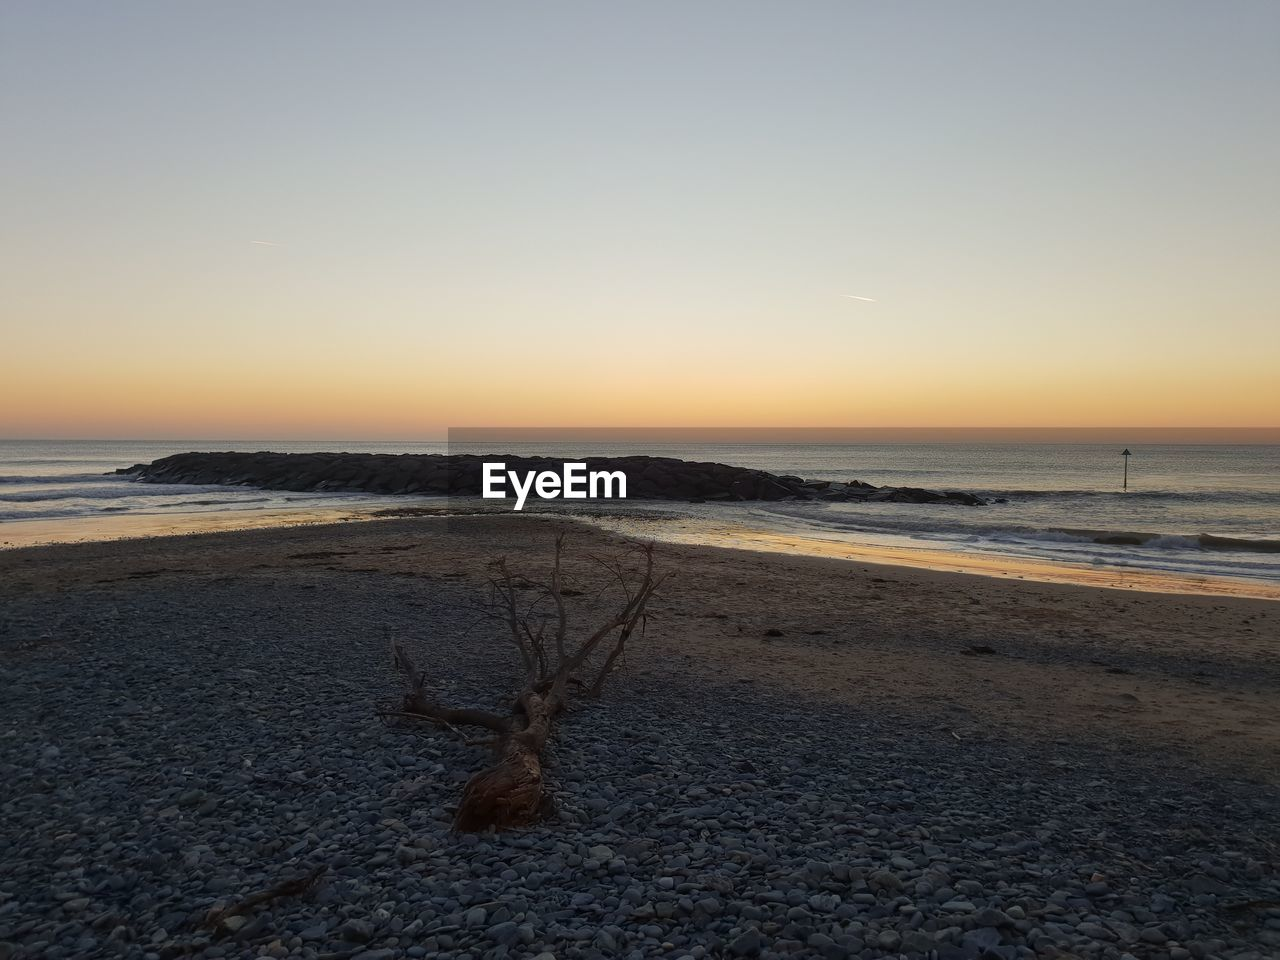 sky, sea, water, beach, scenics - nature, land, sunset, beauty in nature, tranquility, tranquil scene, nature, horizon, sand, horizon over water, copy space, no people, non-urban scene, clear sky, orange color, outdoors, driftwood